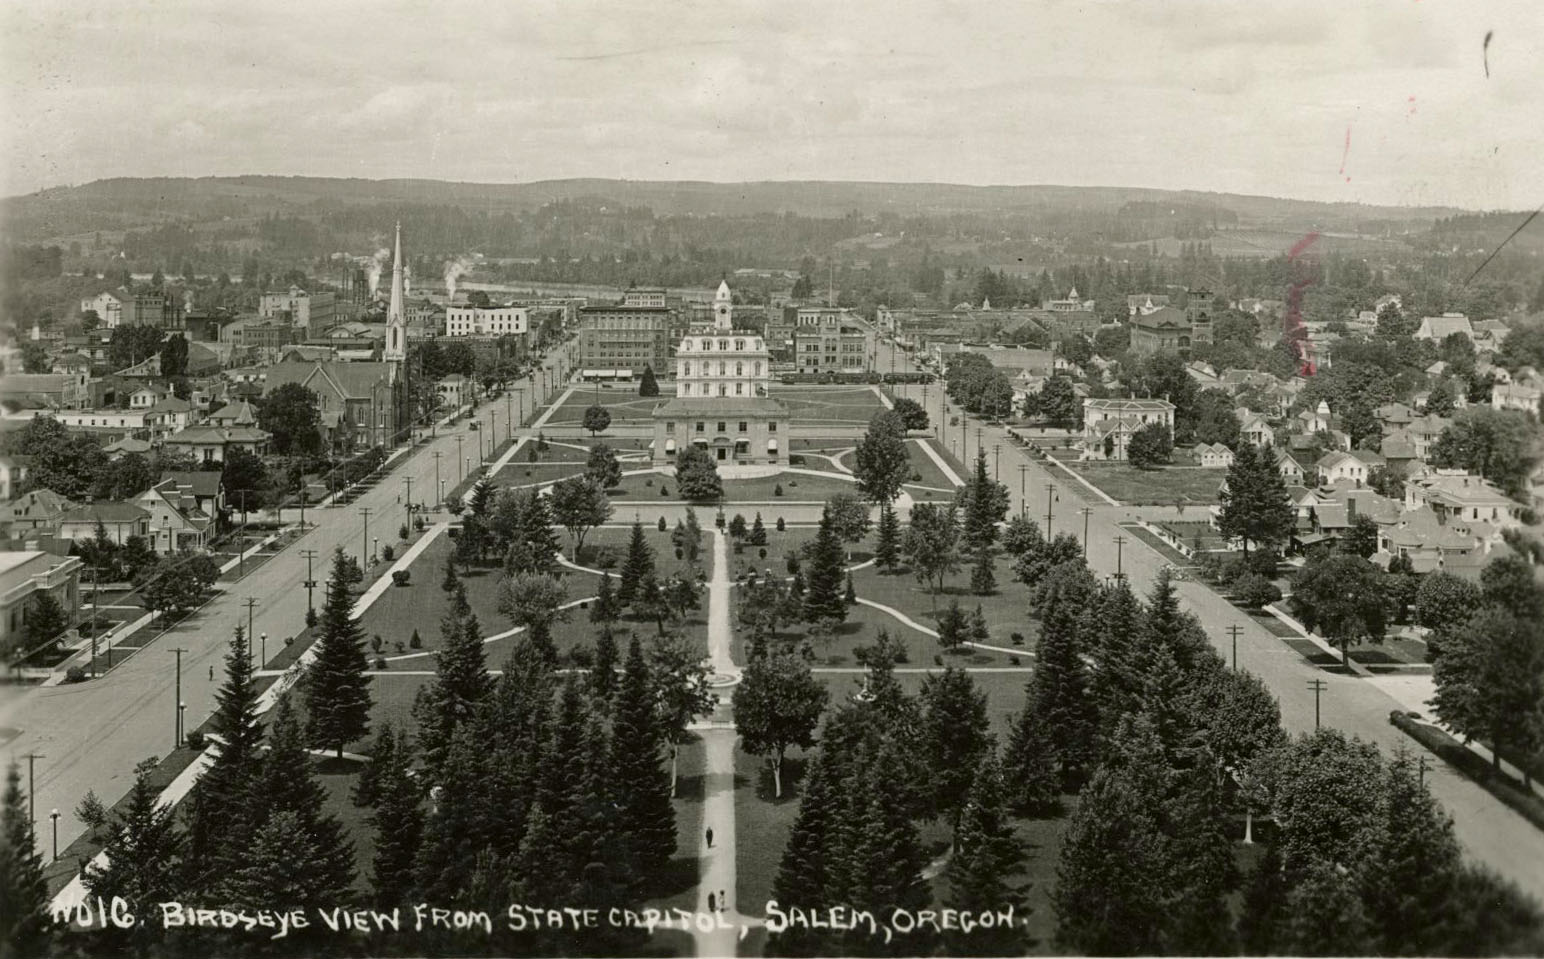 View of Willson Park, Marion County Courthouse, and post office, from capitol dome, Salem